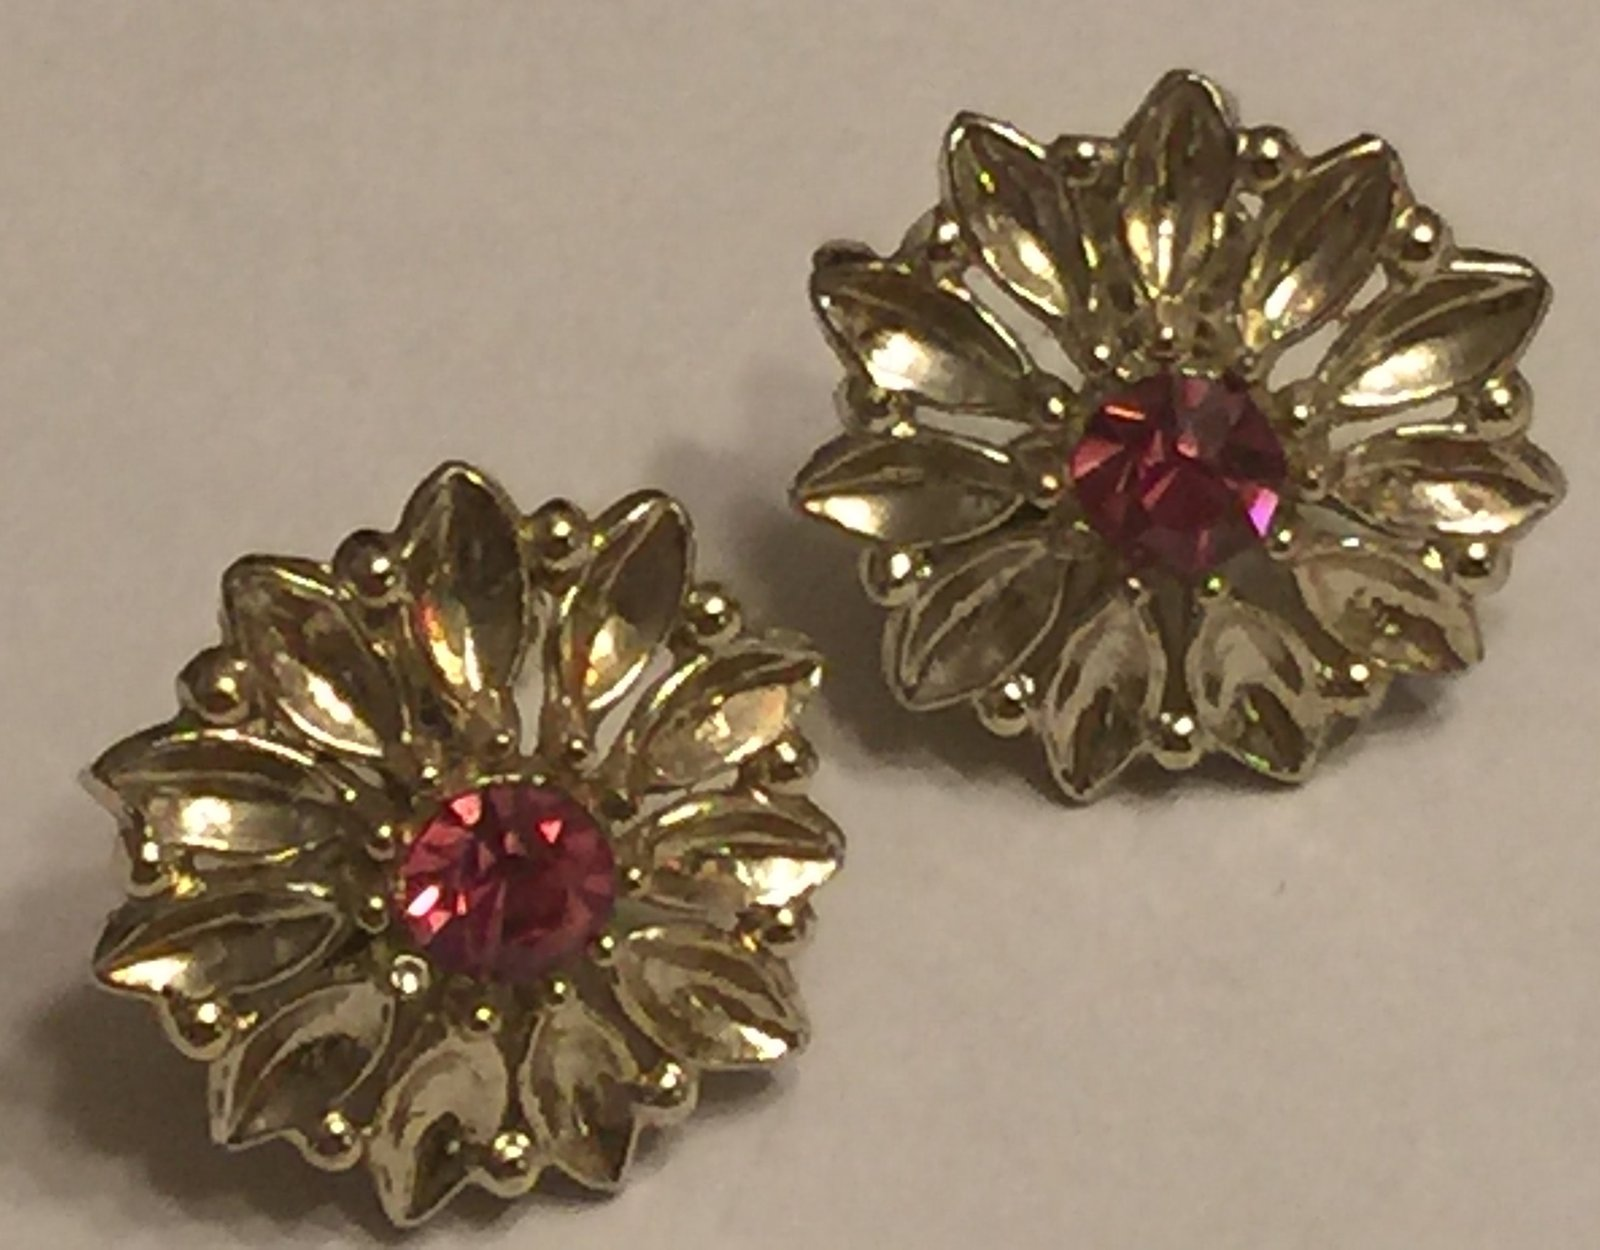 +VTG 50s Screw Back Earrings~ Gold Tone Flowers w/Deep Pink Rhinestone Centers image 3